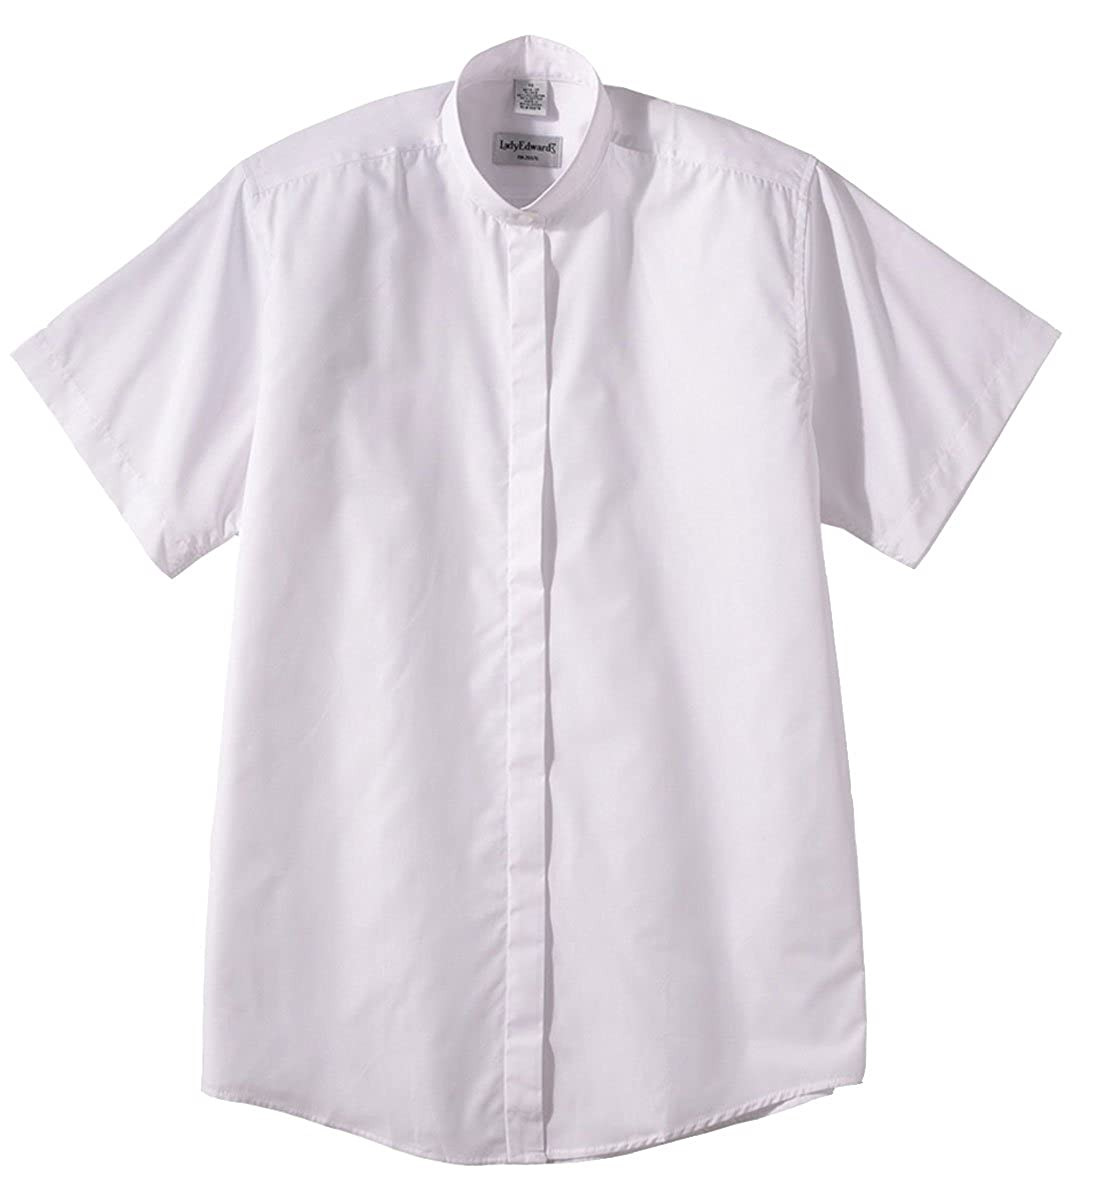 Edwards Garment Womens Short Sleeve Banded Collar Shirt White X